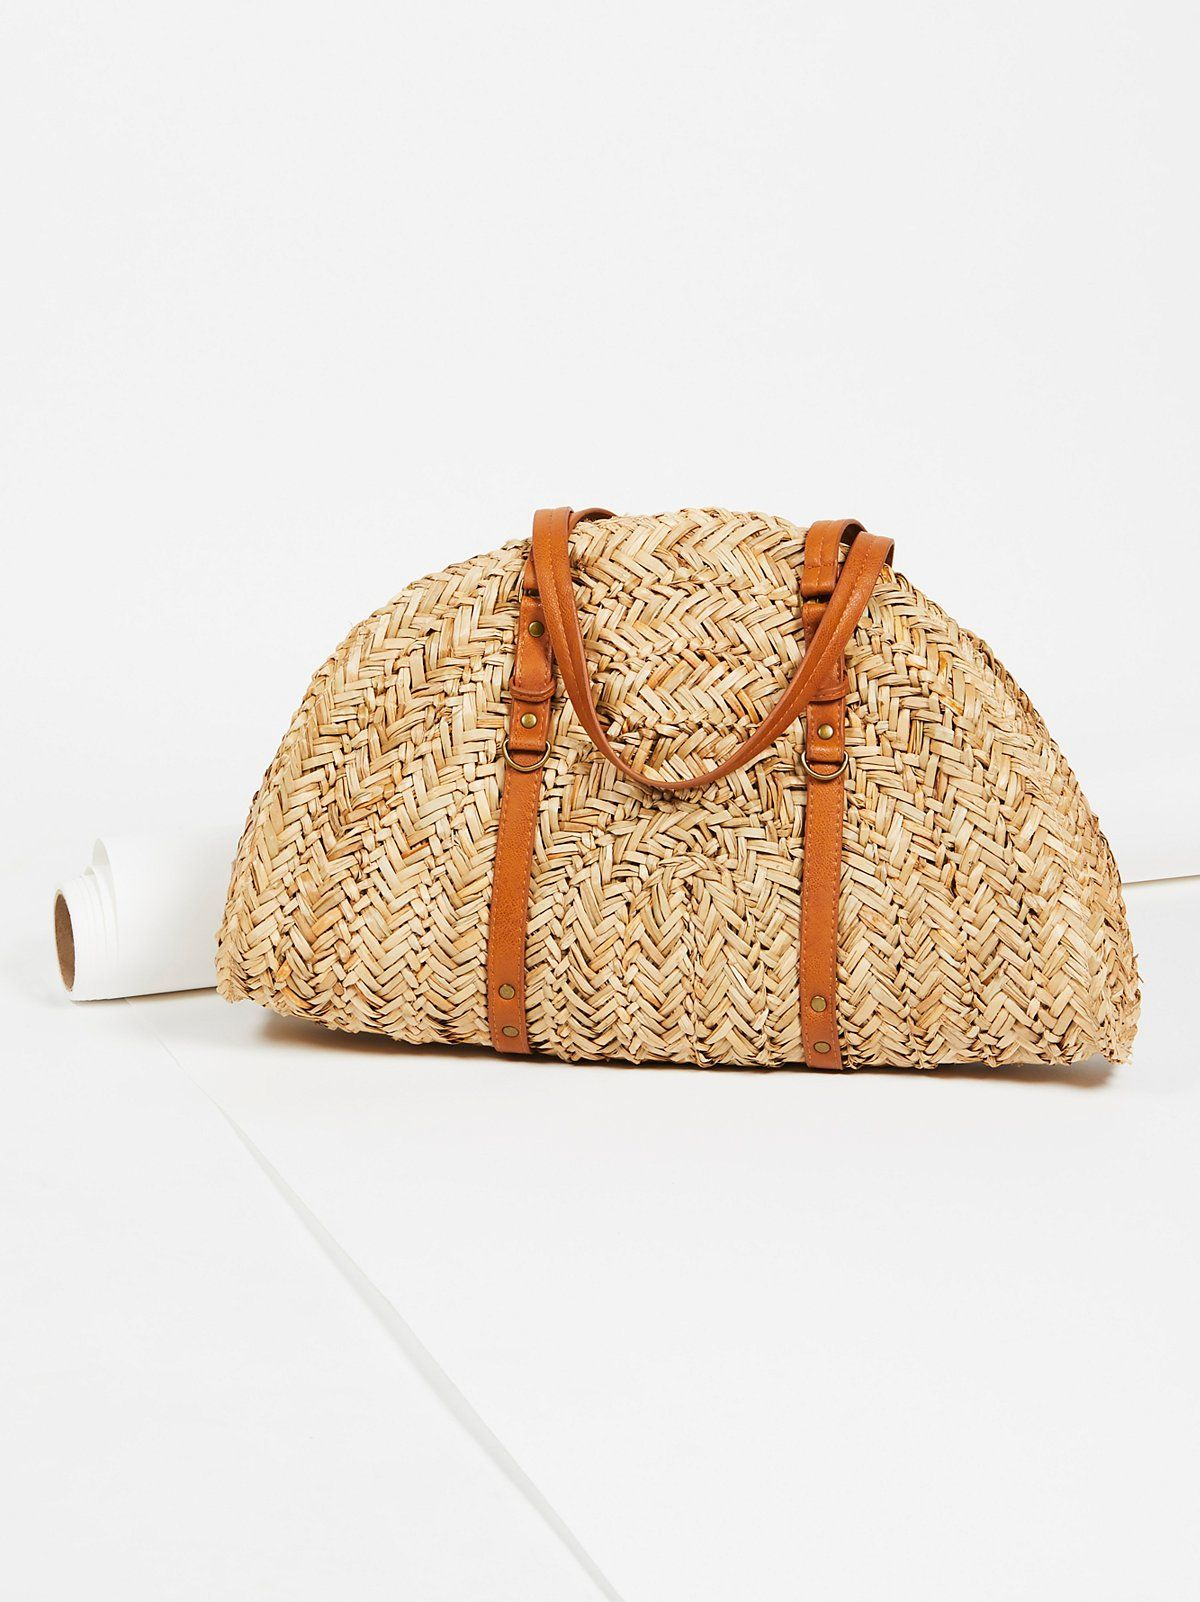 Round Straw Shoulder Bag The Fashion Bible HPecm